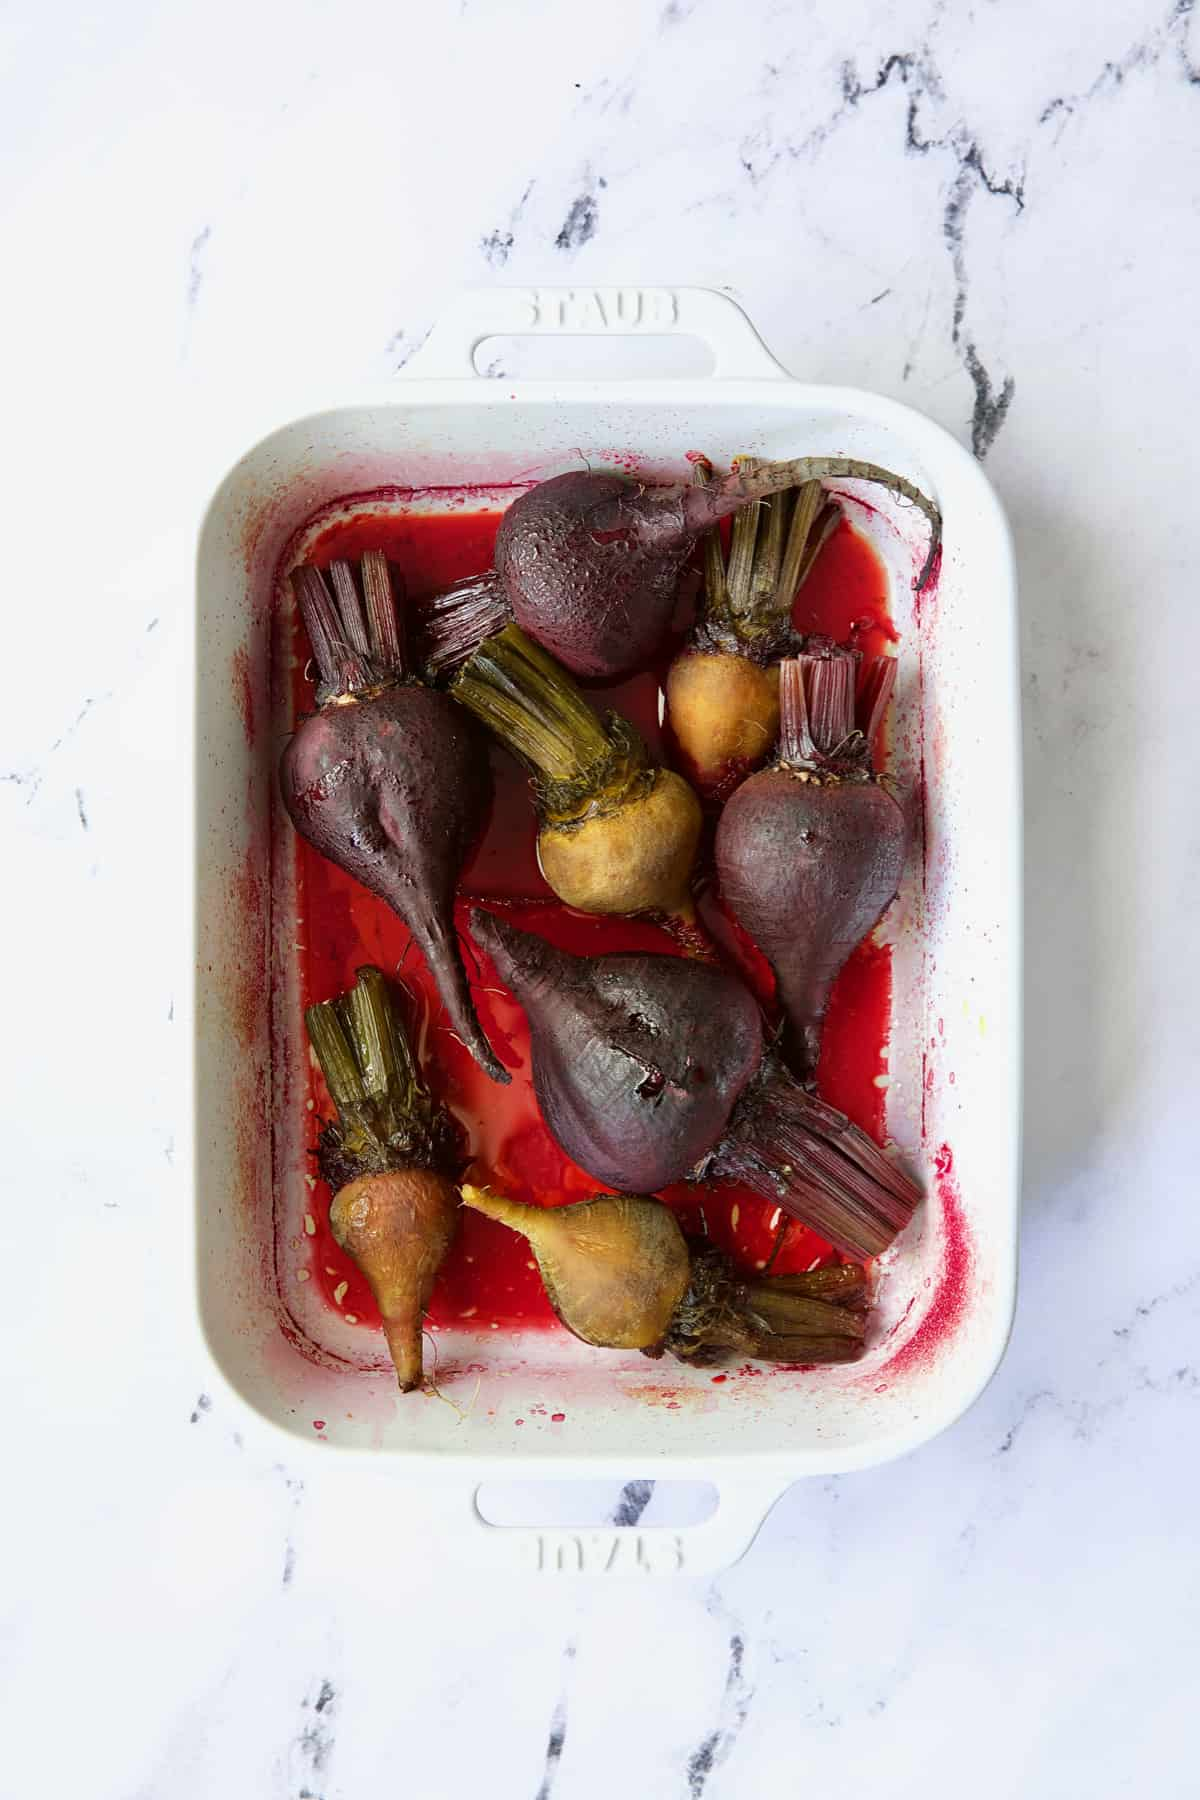 Roasted red and yellow beets in white baking dish.